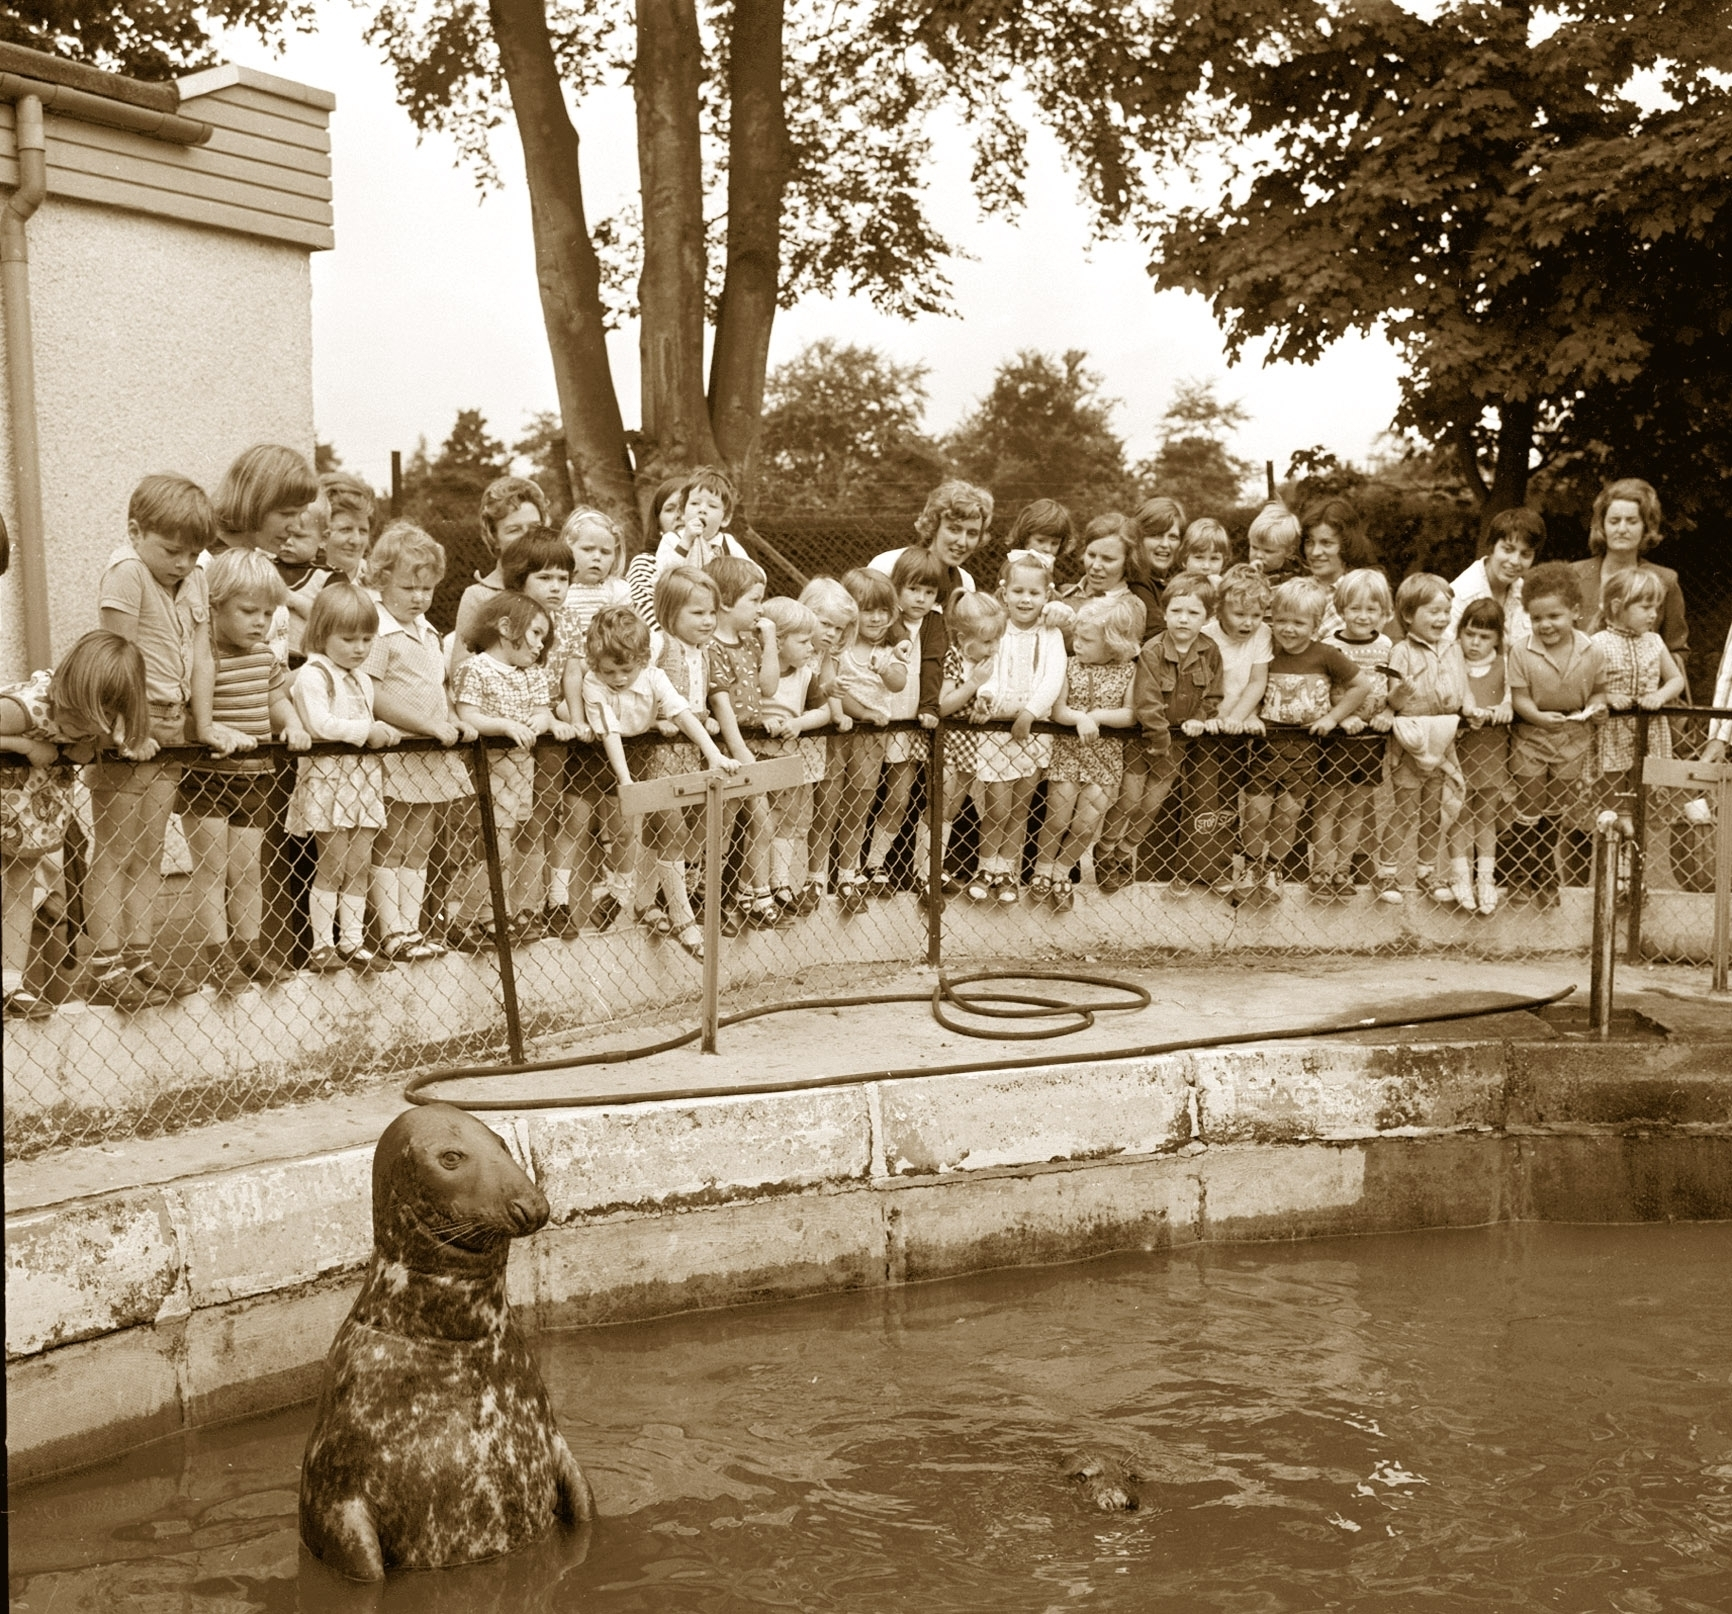 Joining the group for a picture in 1976 was one of the seals at Aberdeen Zoo, Hazlehead. His admirers were the youngsters of St Devenick's Playgroup from Bieldside.